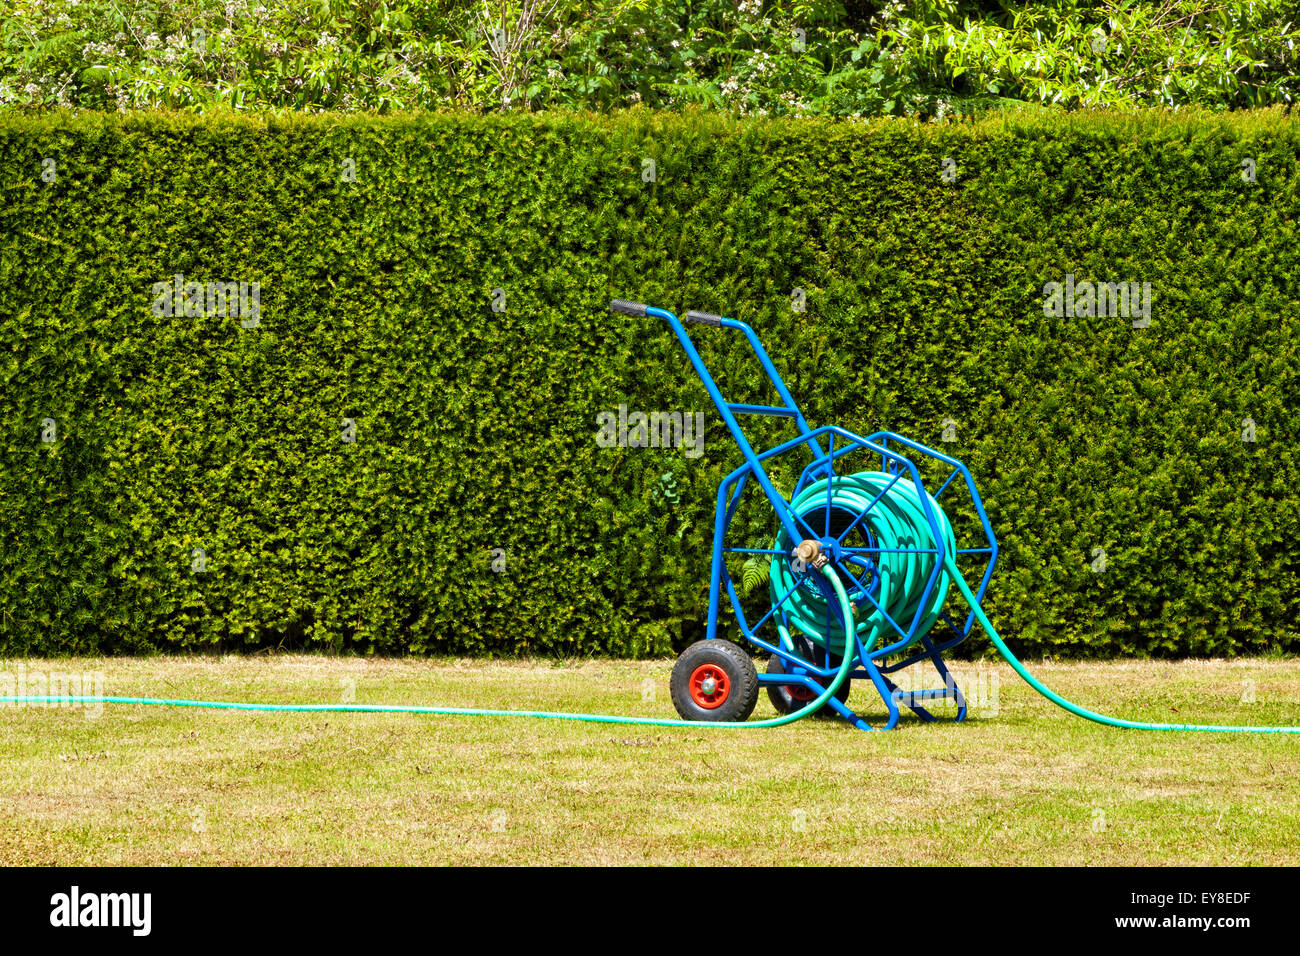 Blue heavy duty garden hose reel, trolley for garden watering on dried out lawn that suffered from drought - Stock Image